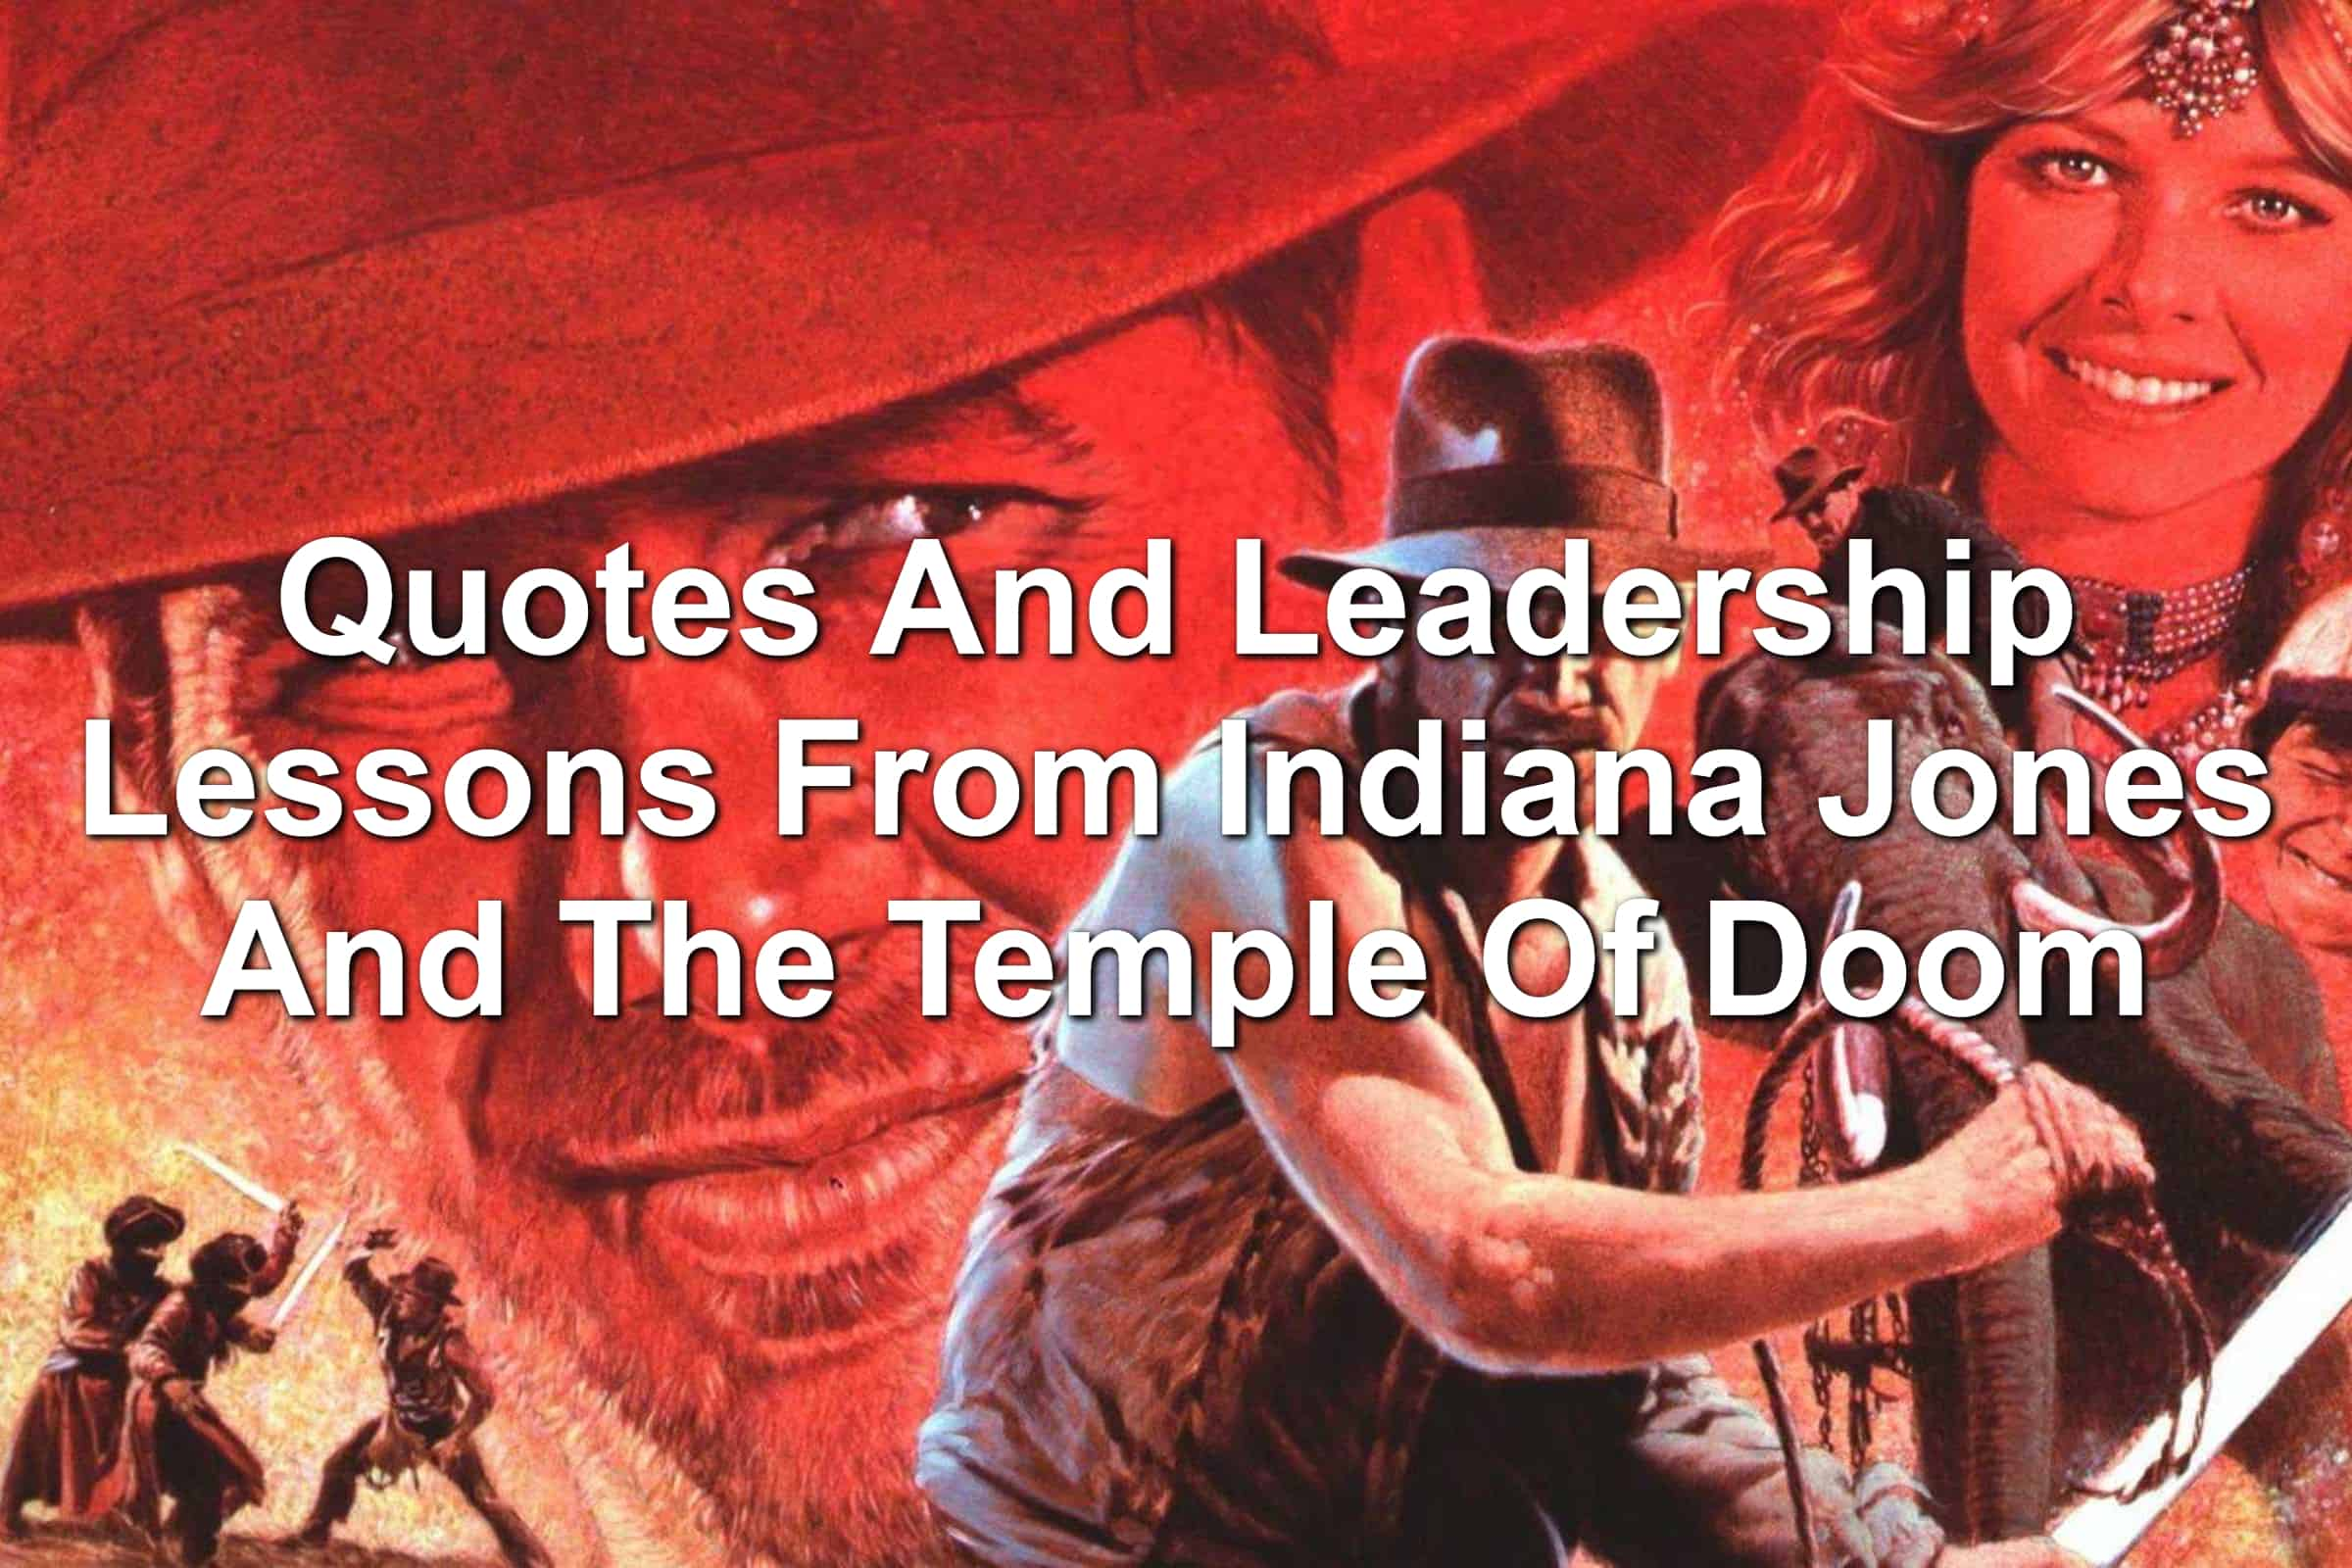 Promotional image for Indiana Jones and the Temple of Doom